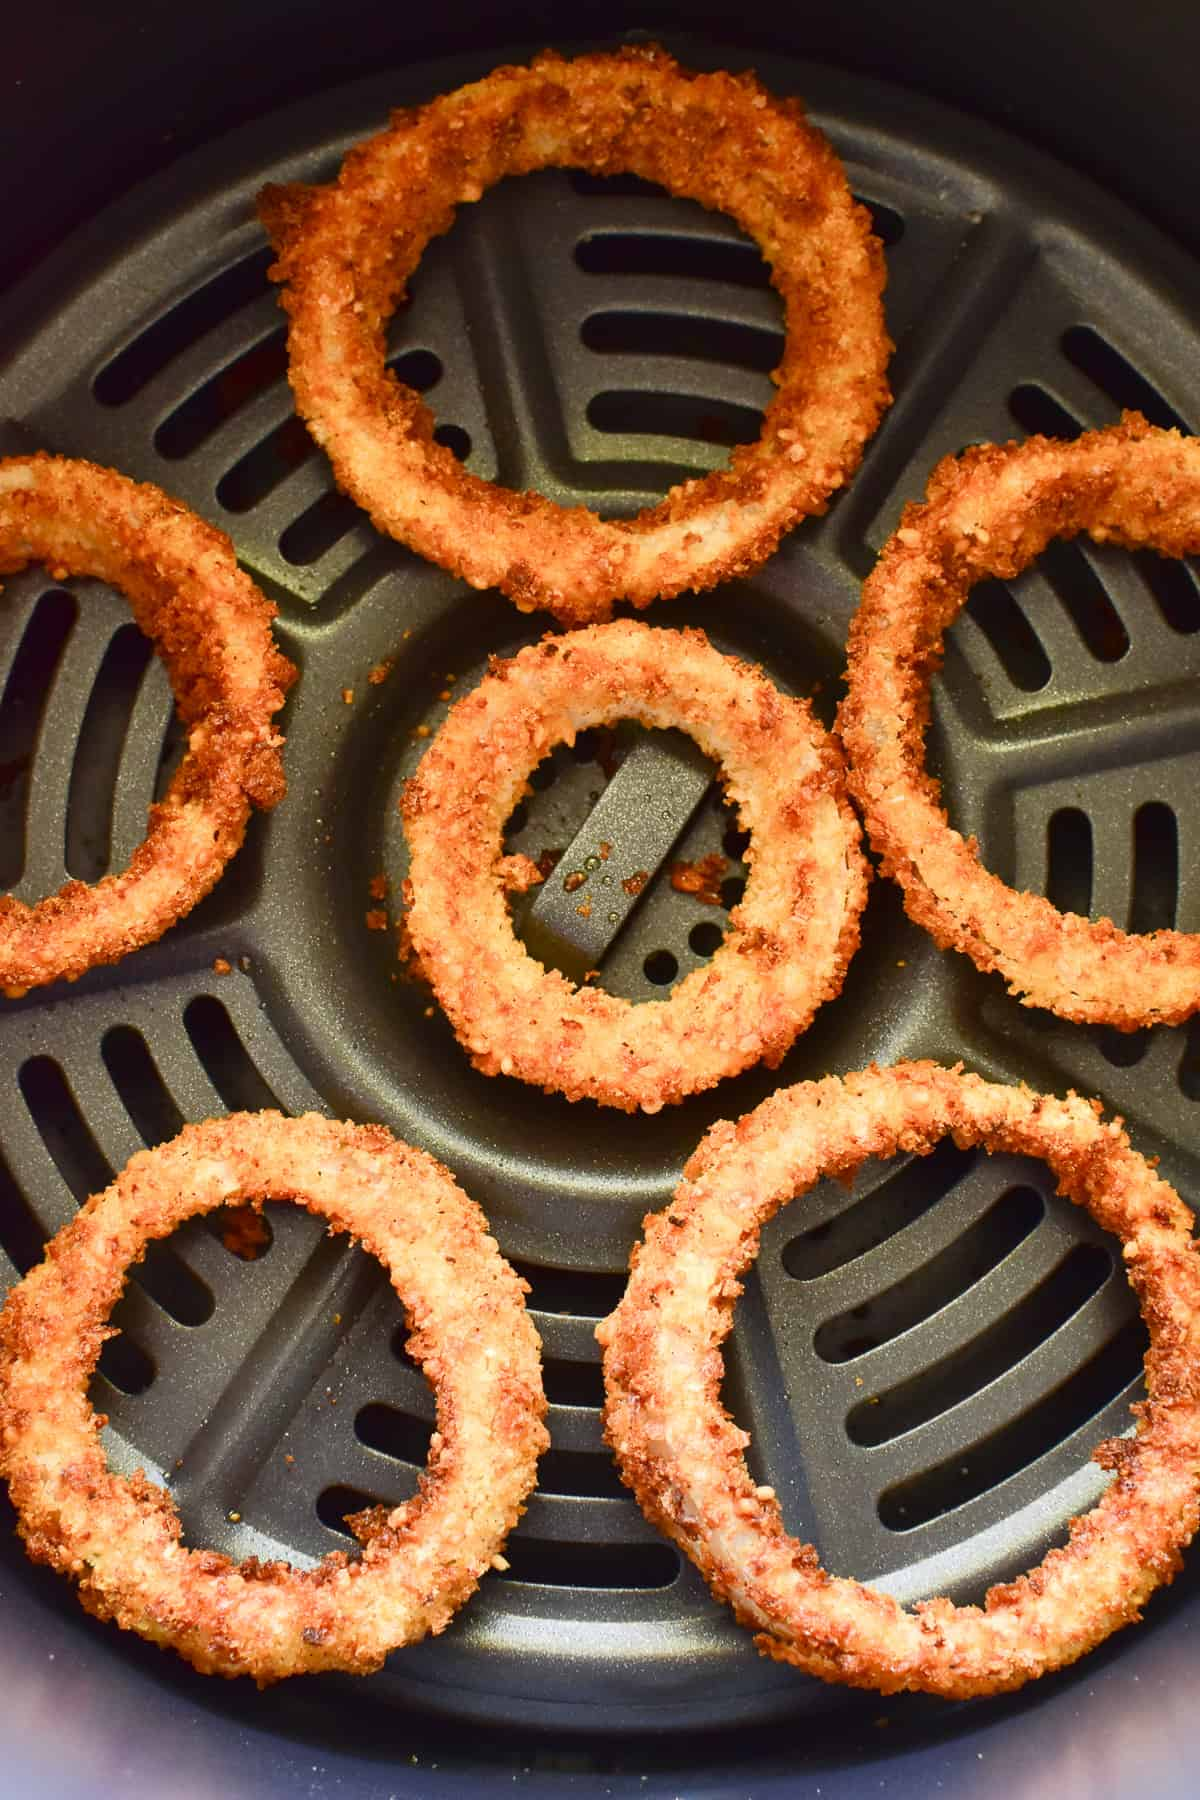 Onion Rings in an air fryer basket